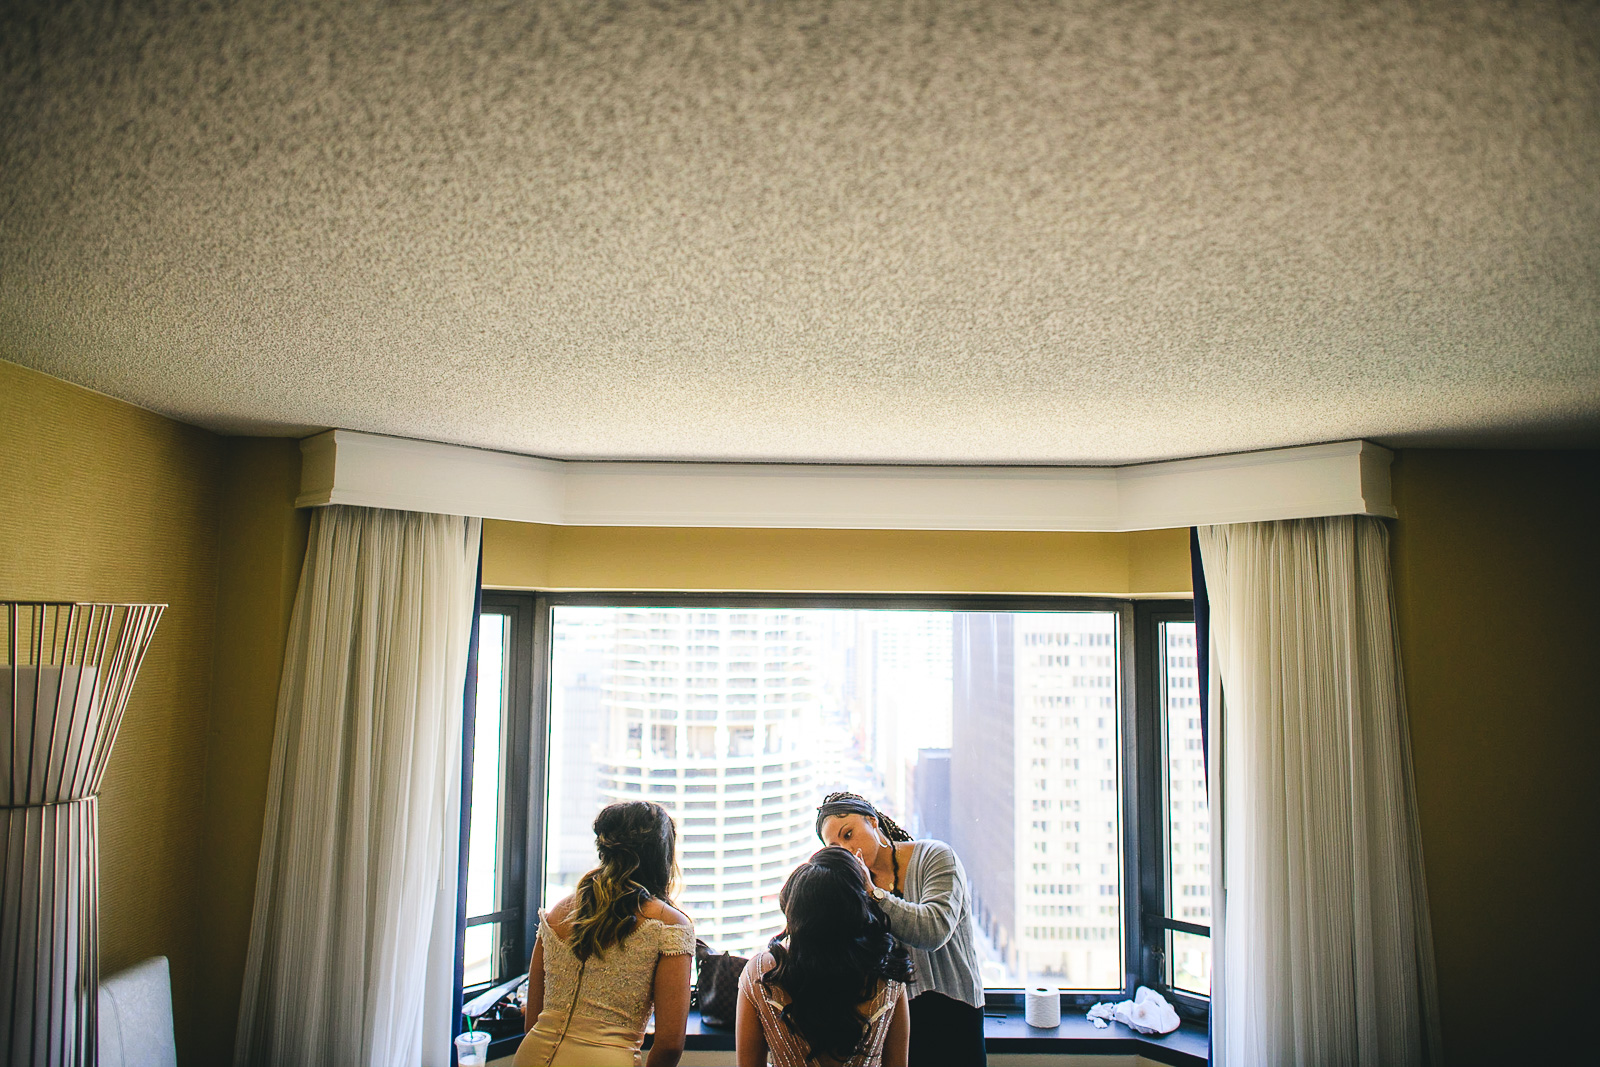 20 renaissance hotel chicago wedding photos - Renaissance Hotel Chicago Wedding Photos // Francine + RJ